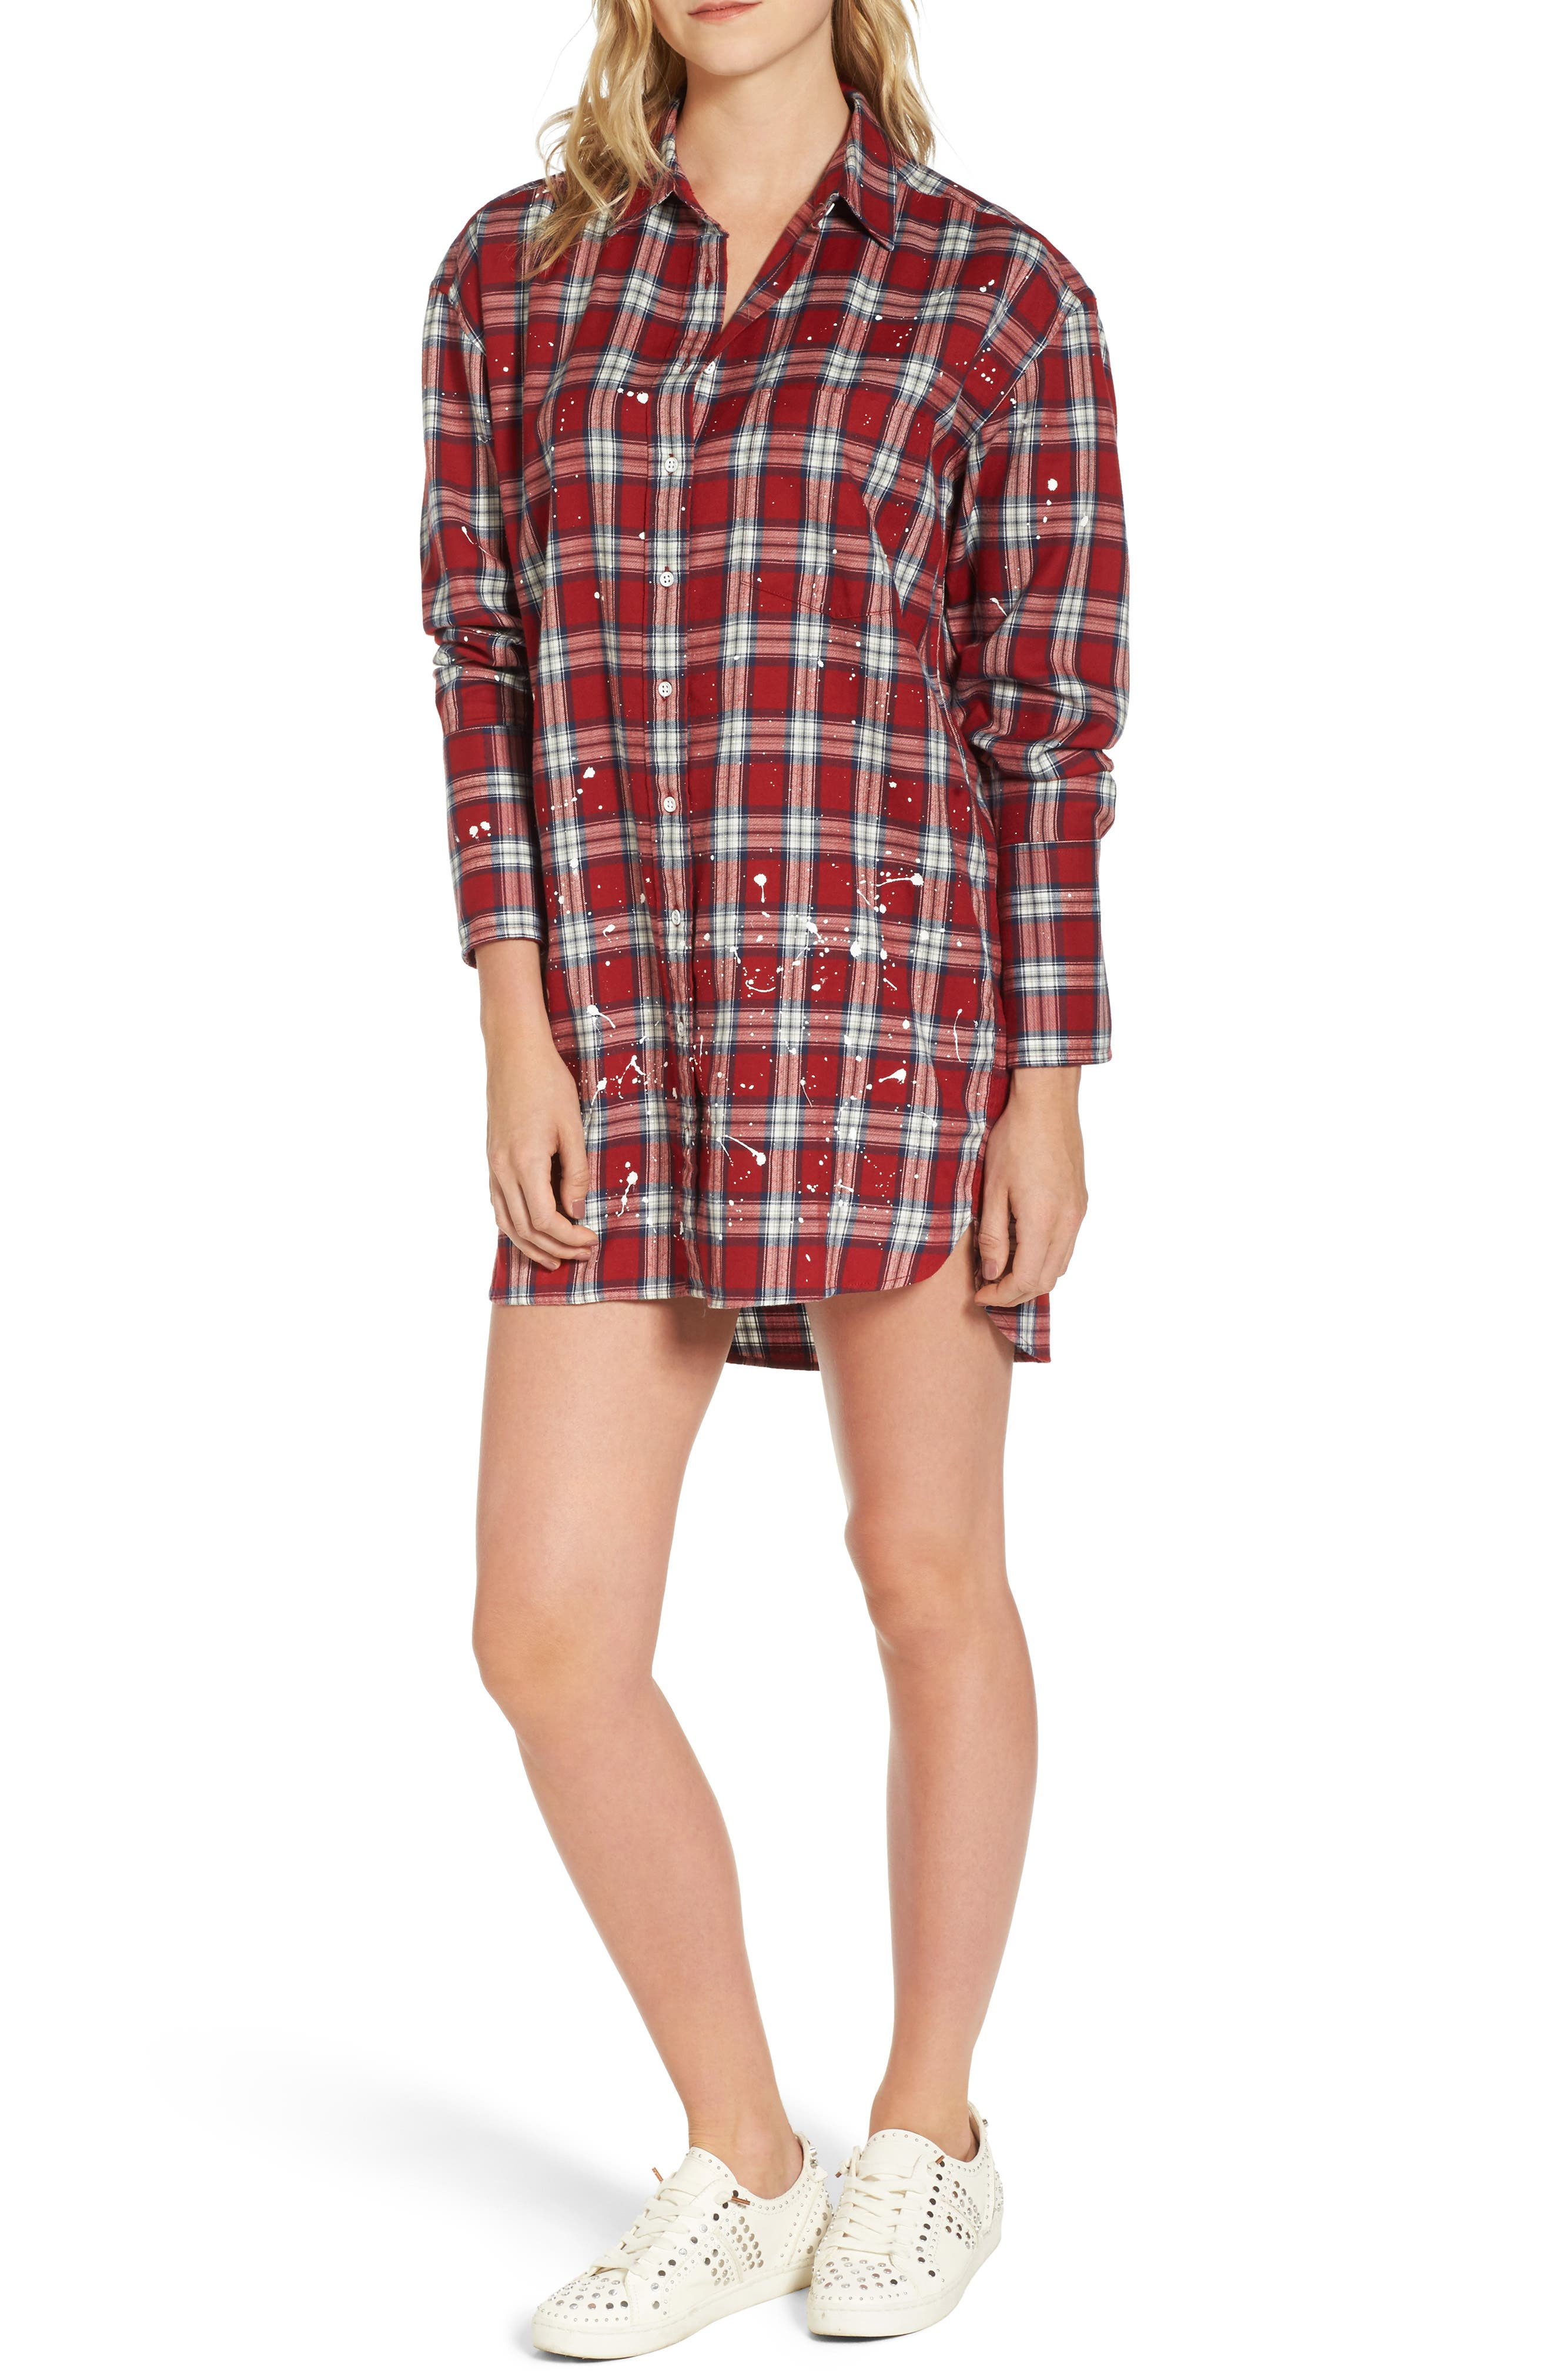 Alternate Image 1 Selected - DL1961 Rivington & Essex Plaid Shirtdress